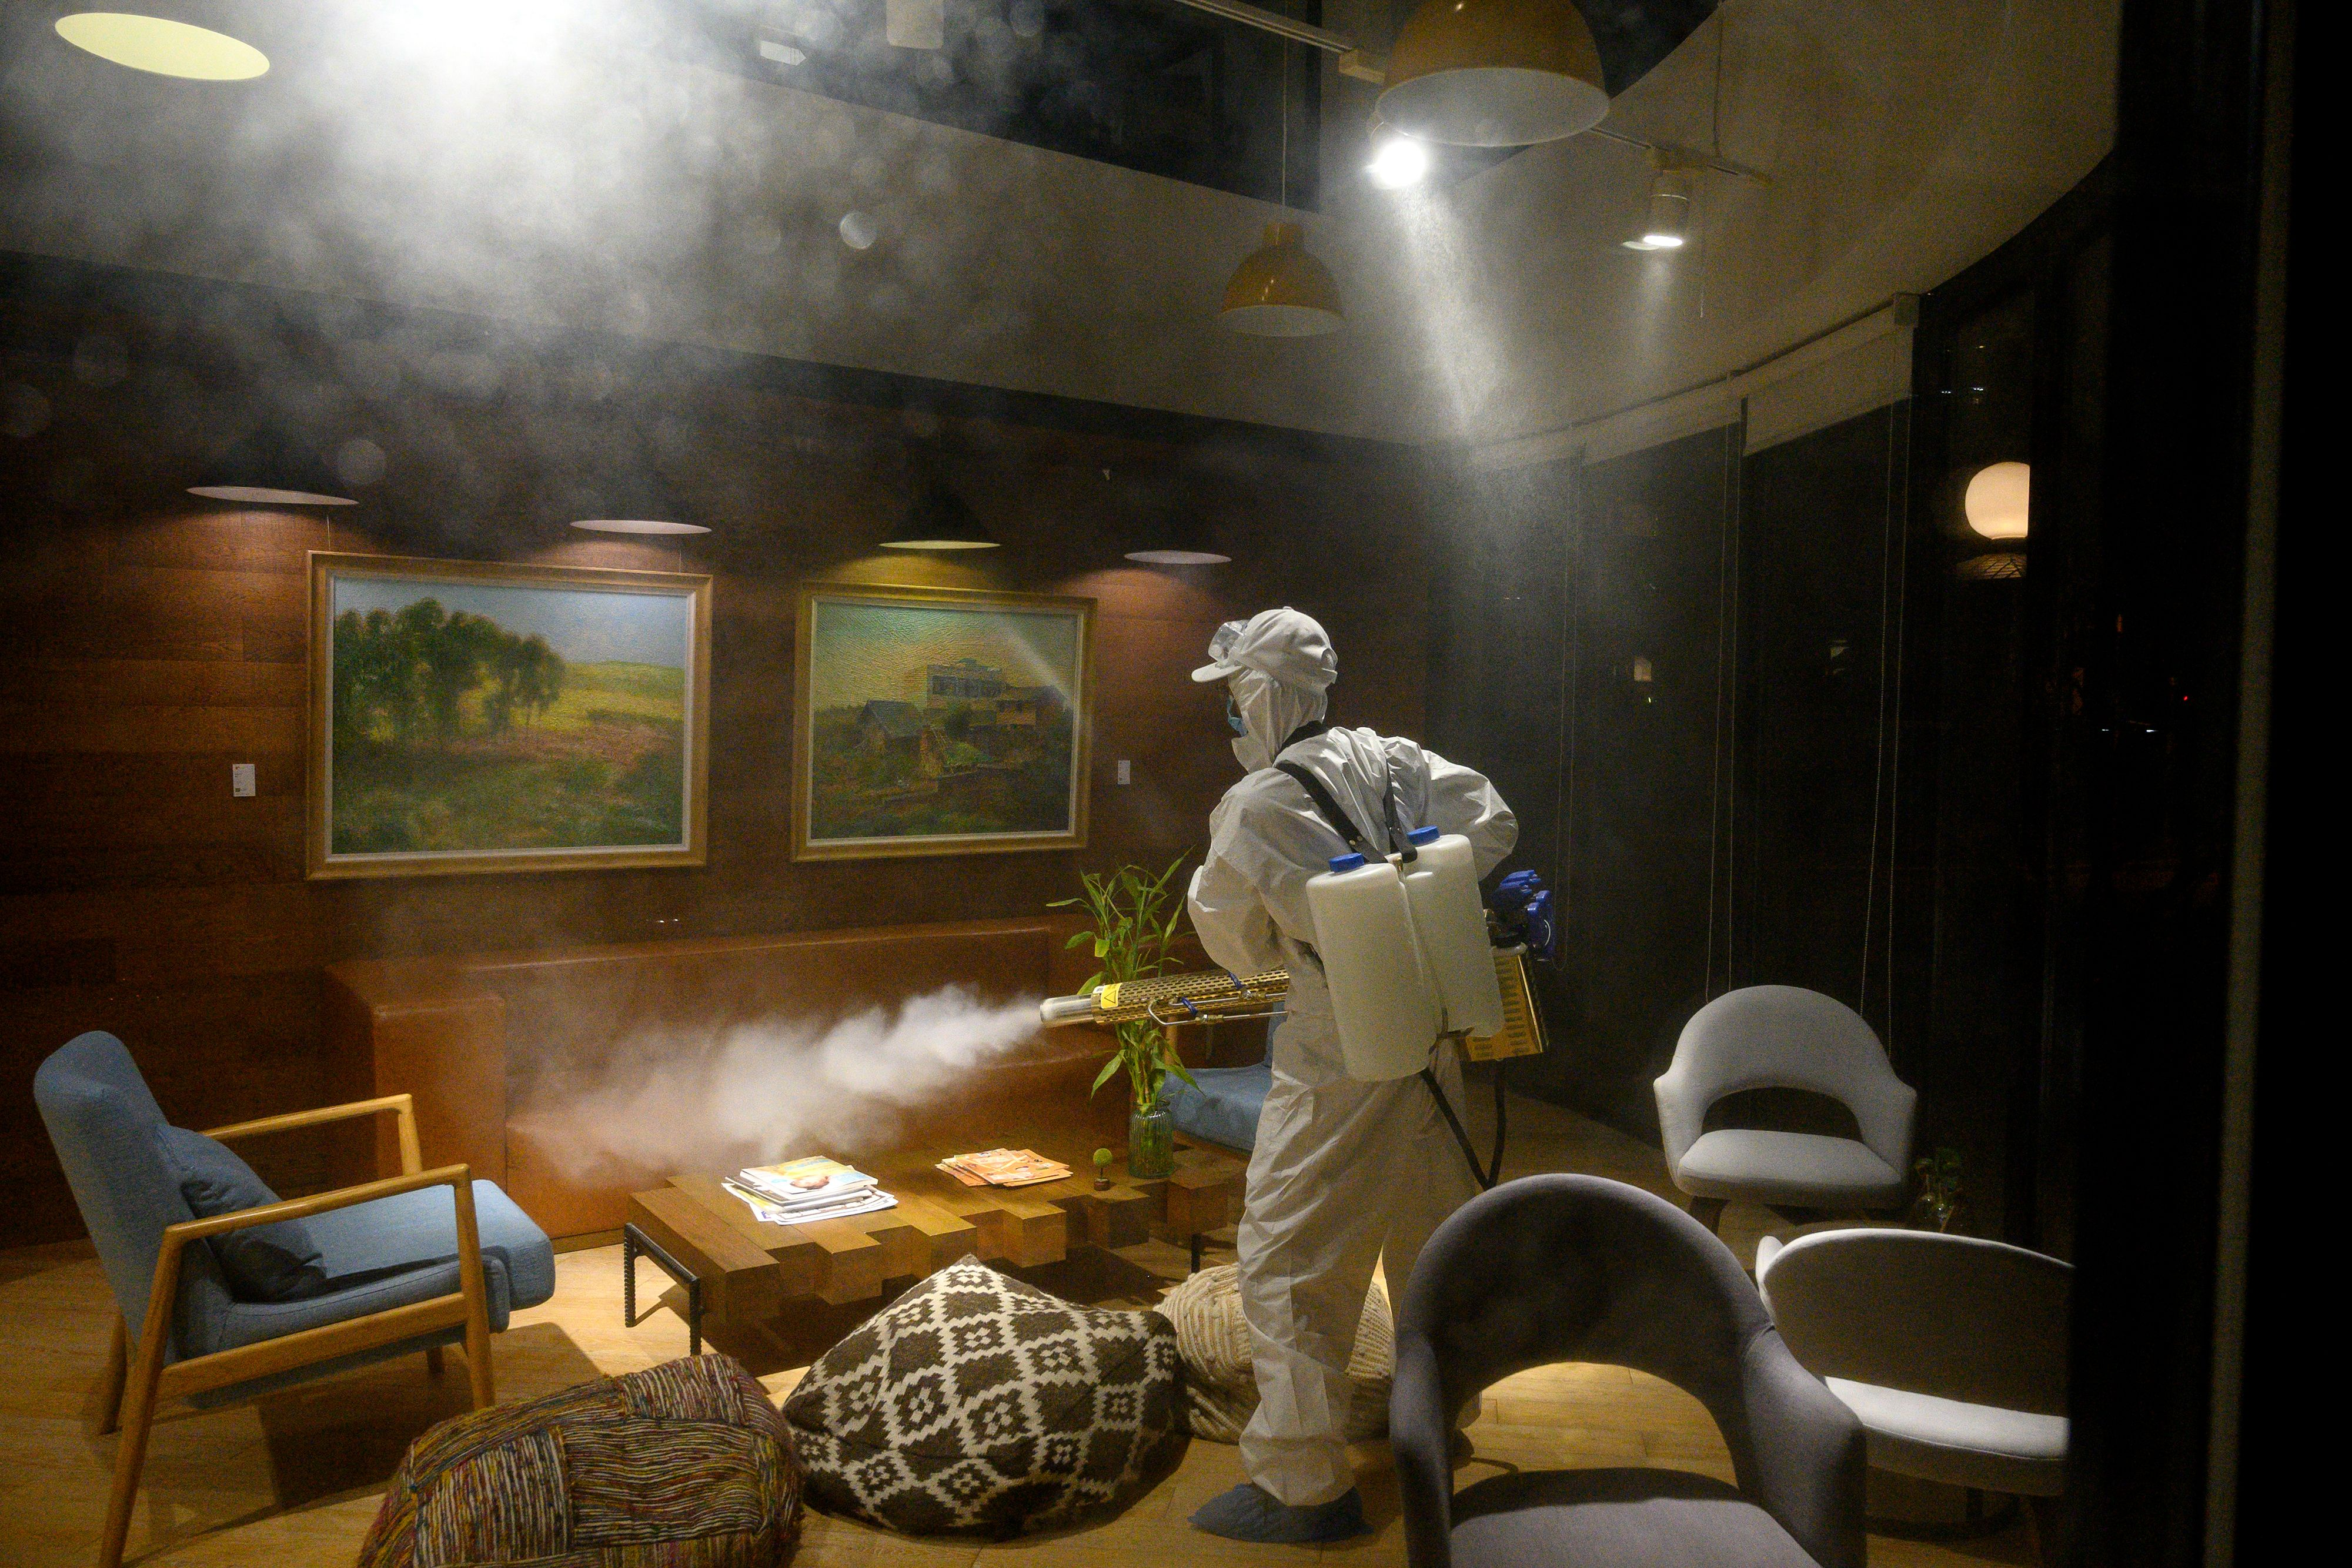 How coronavirus could force the work-from-home movement